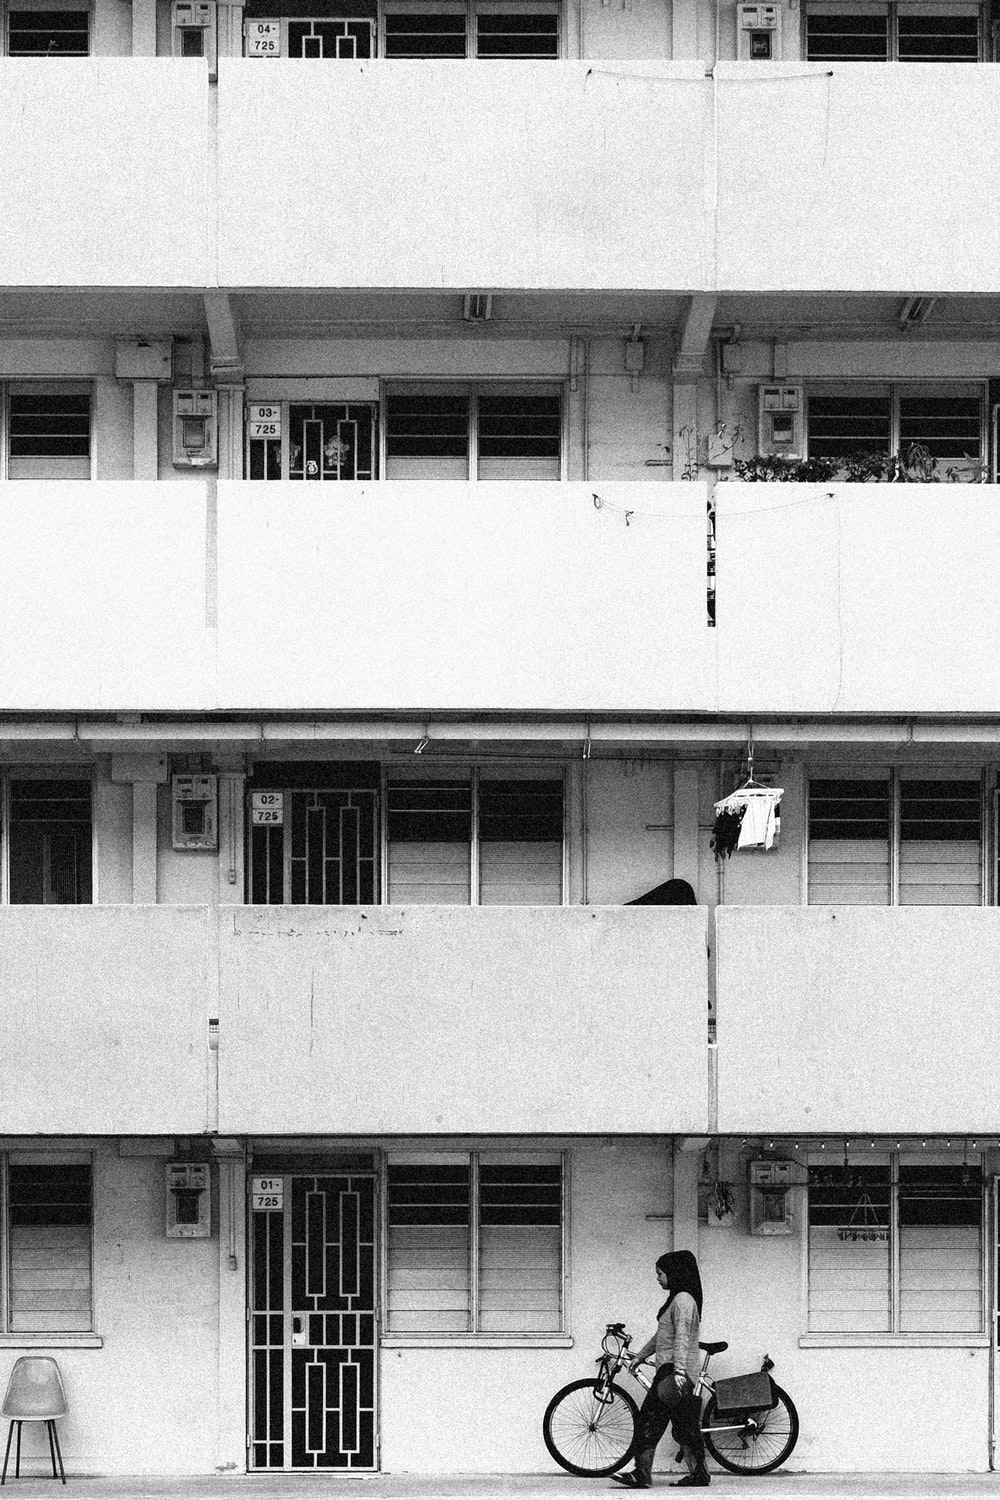 white concrete building with white window blinds